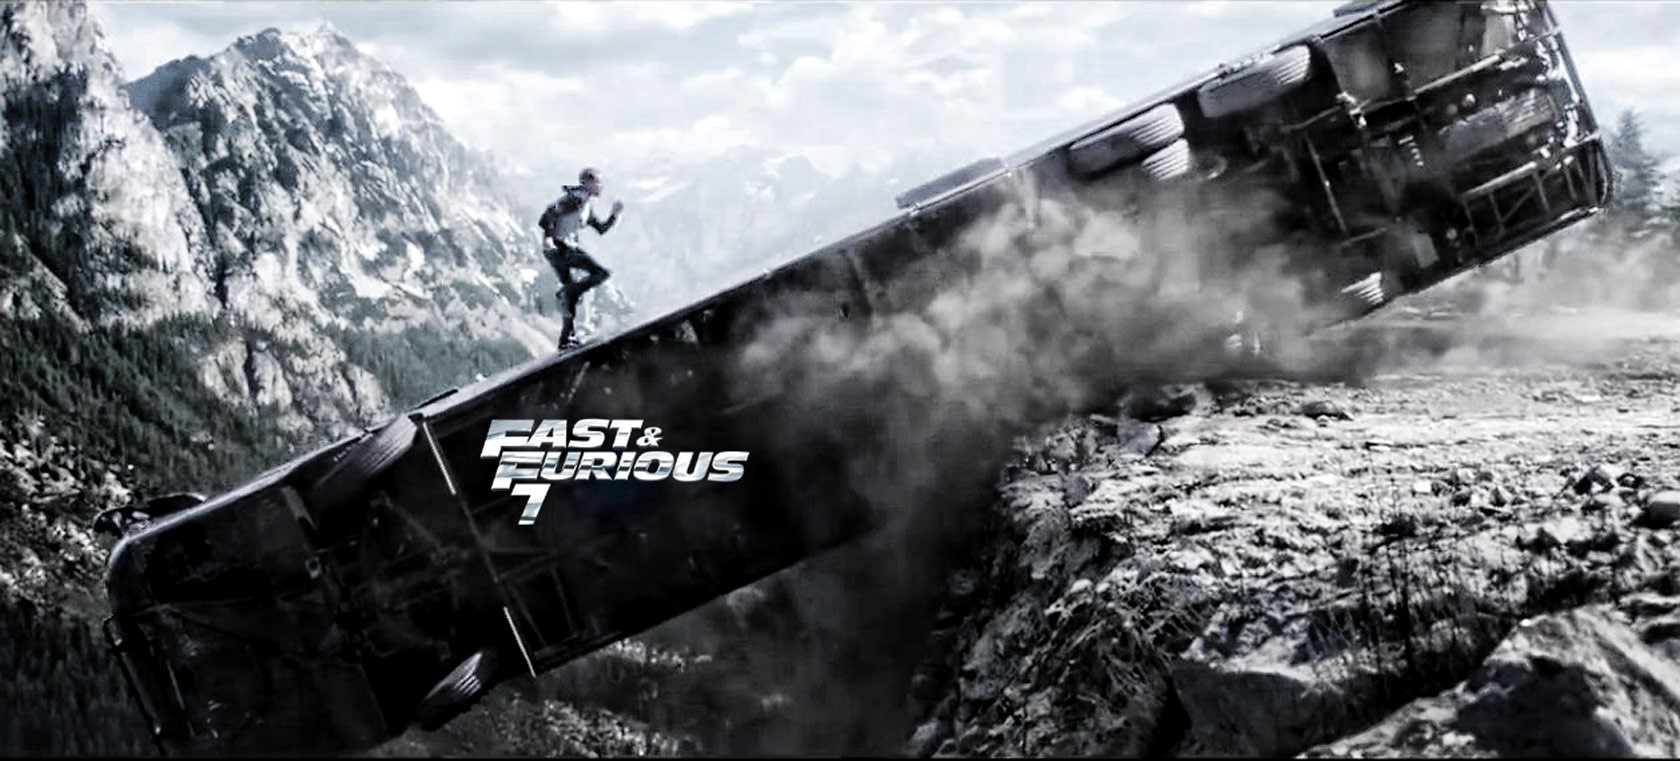 Download Fast And Furious 7 Movie Action Trailer HD Wallpaper Search 1680x761